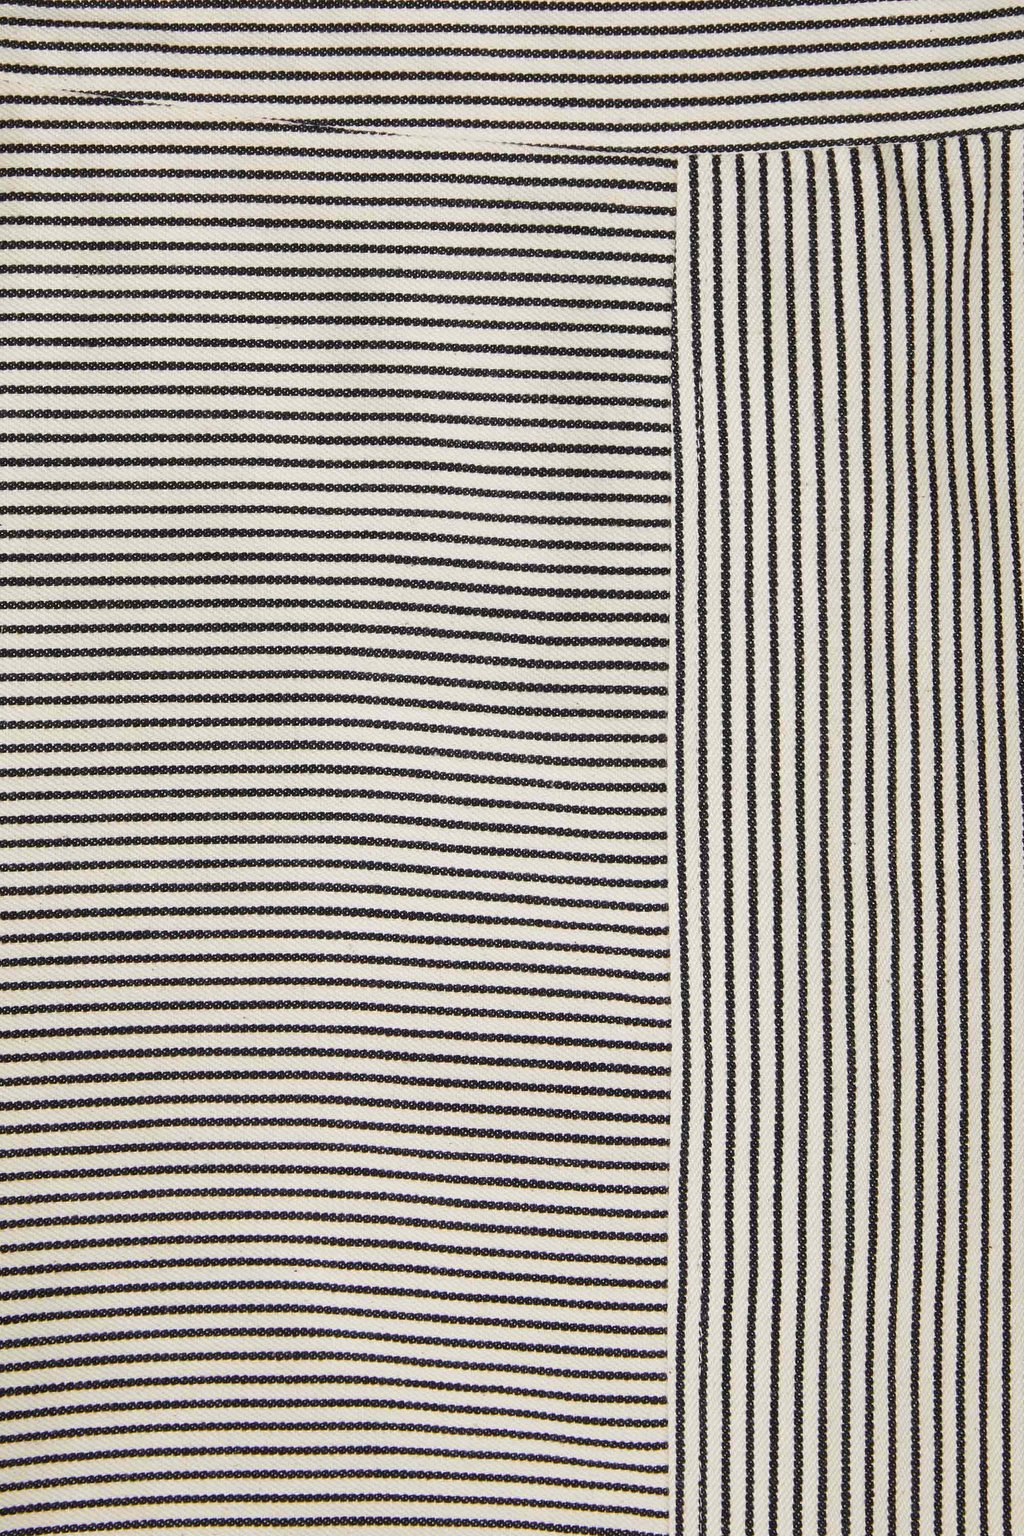 Skirt 3433 White Black Stripe 6